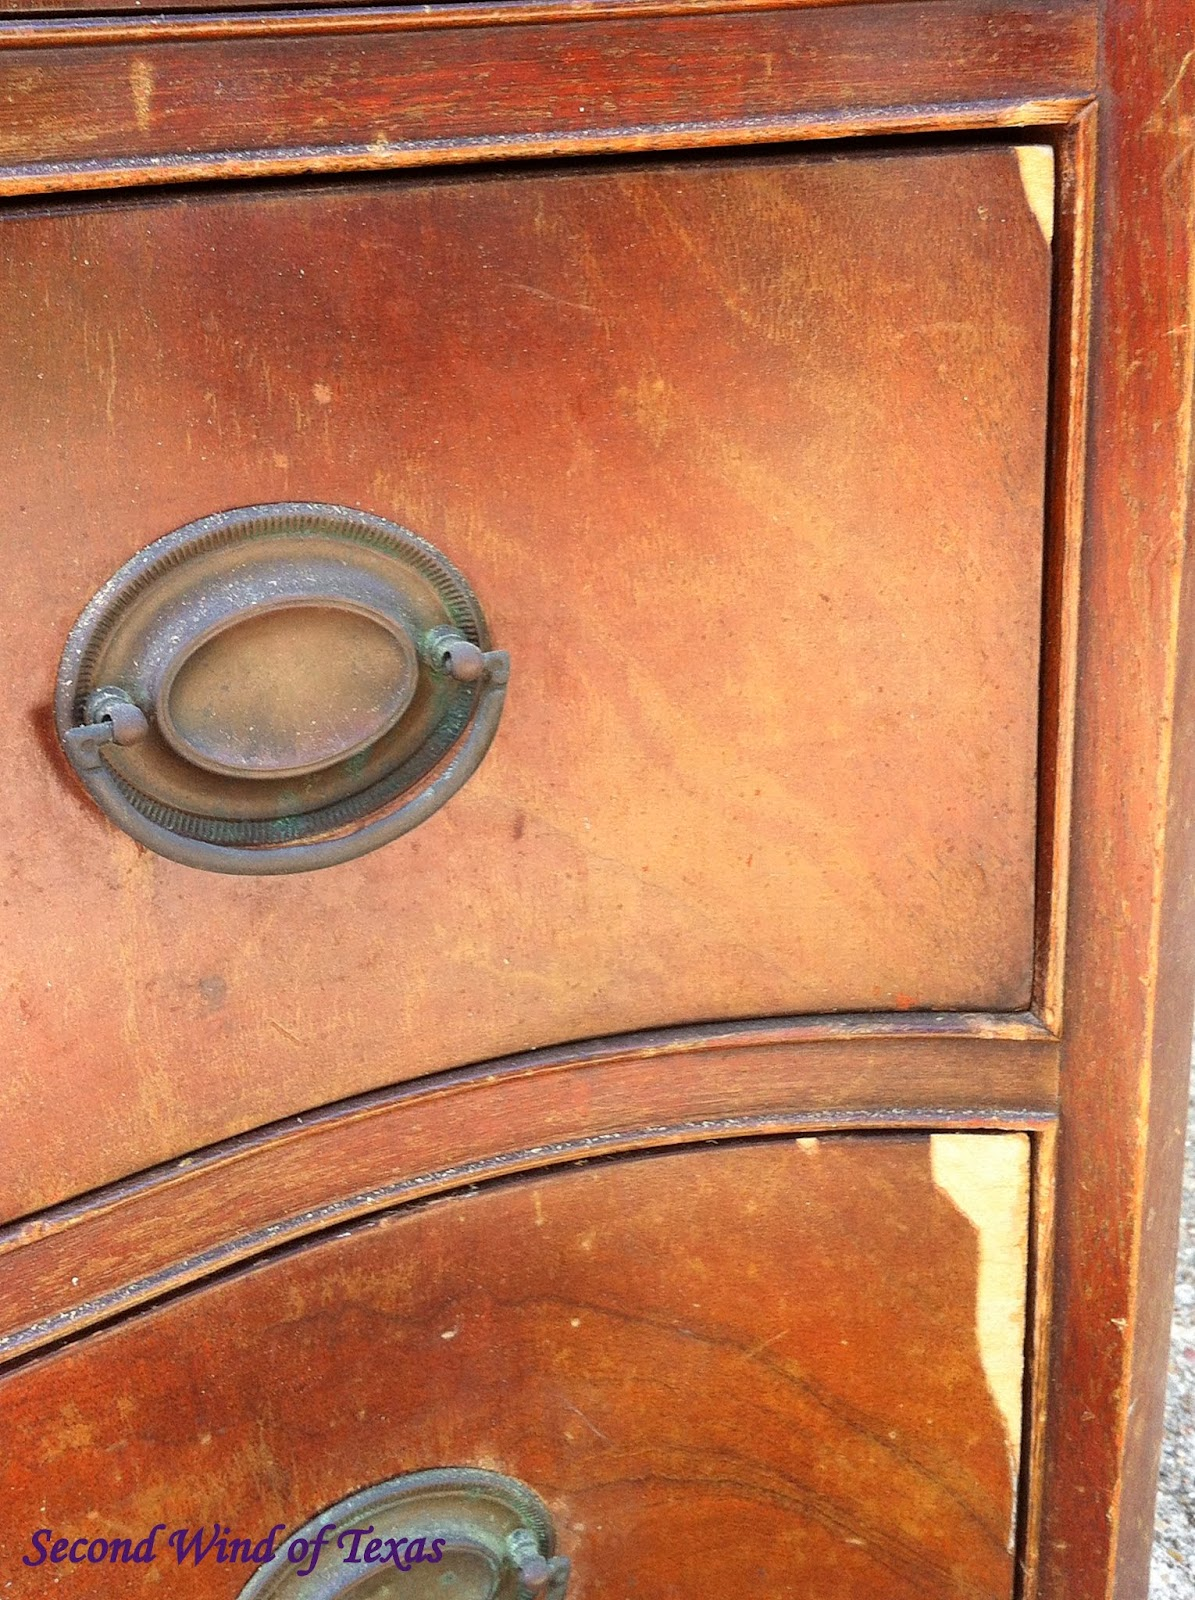 Second Wind of Texas - Second Wind Of Texas: How To Replace Broken/Chipped Veneer